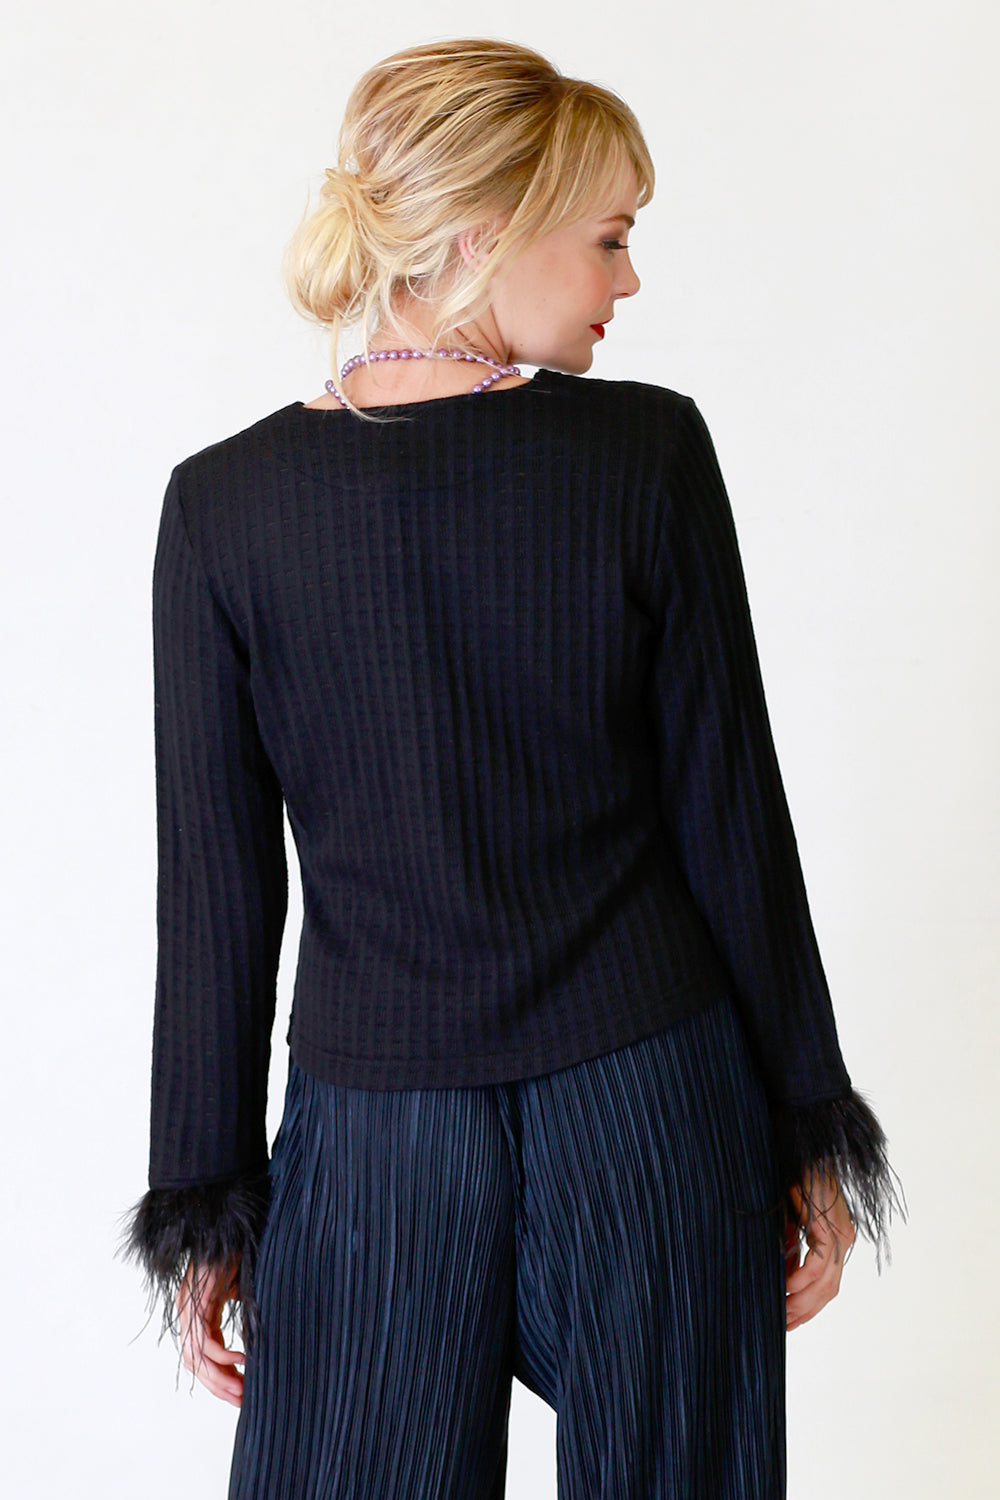 Aleshia Feather Cardigan, Annah Stretton AW19, Statement Sleeve Black Knit Cardigan, Shot on Model